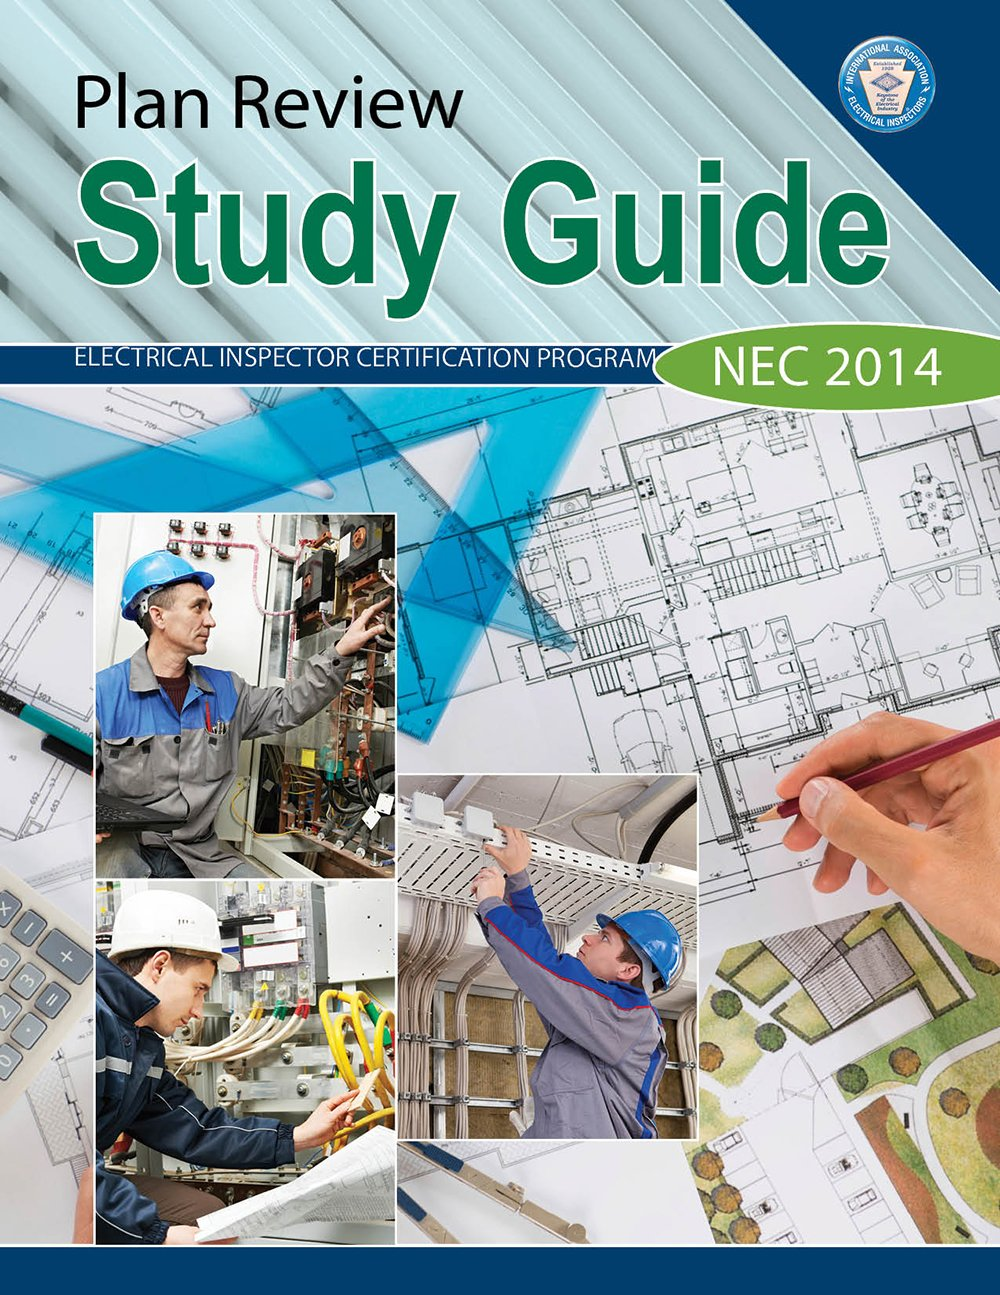 Plan Review Study Guide - NEC 2014: International Association of Electrical  Inspectors, Kathryn P. Ingley: 9781890659684: Amazon.com: Books